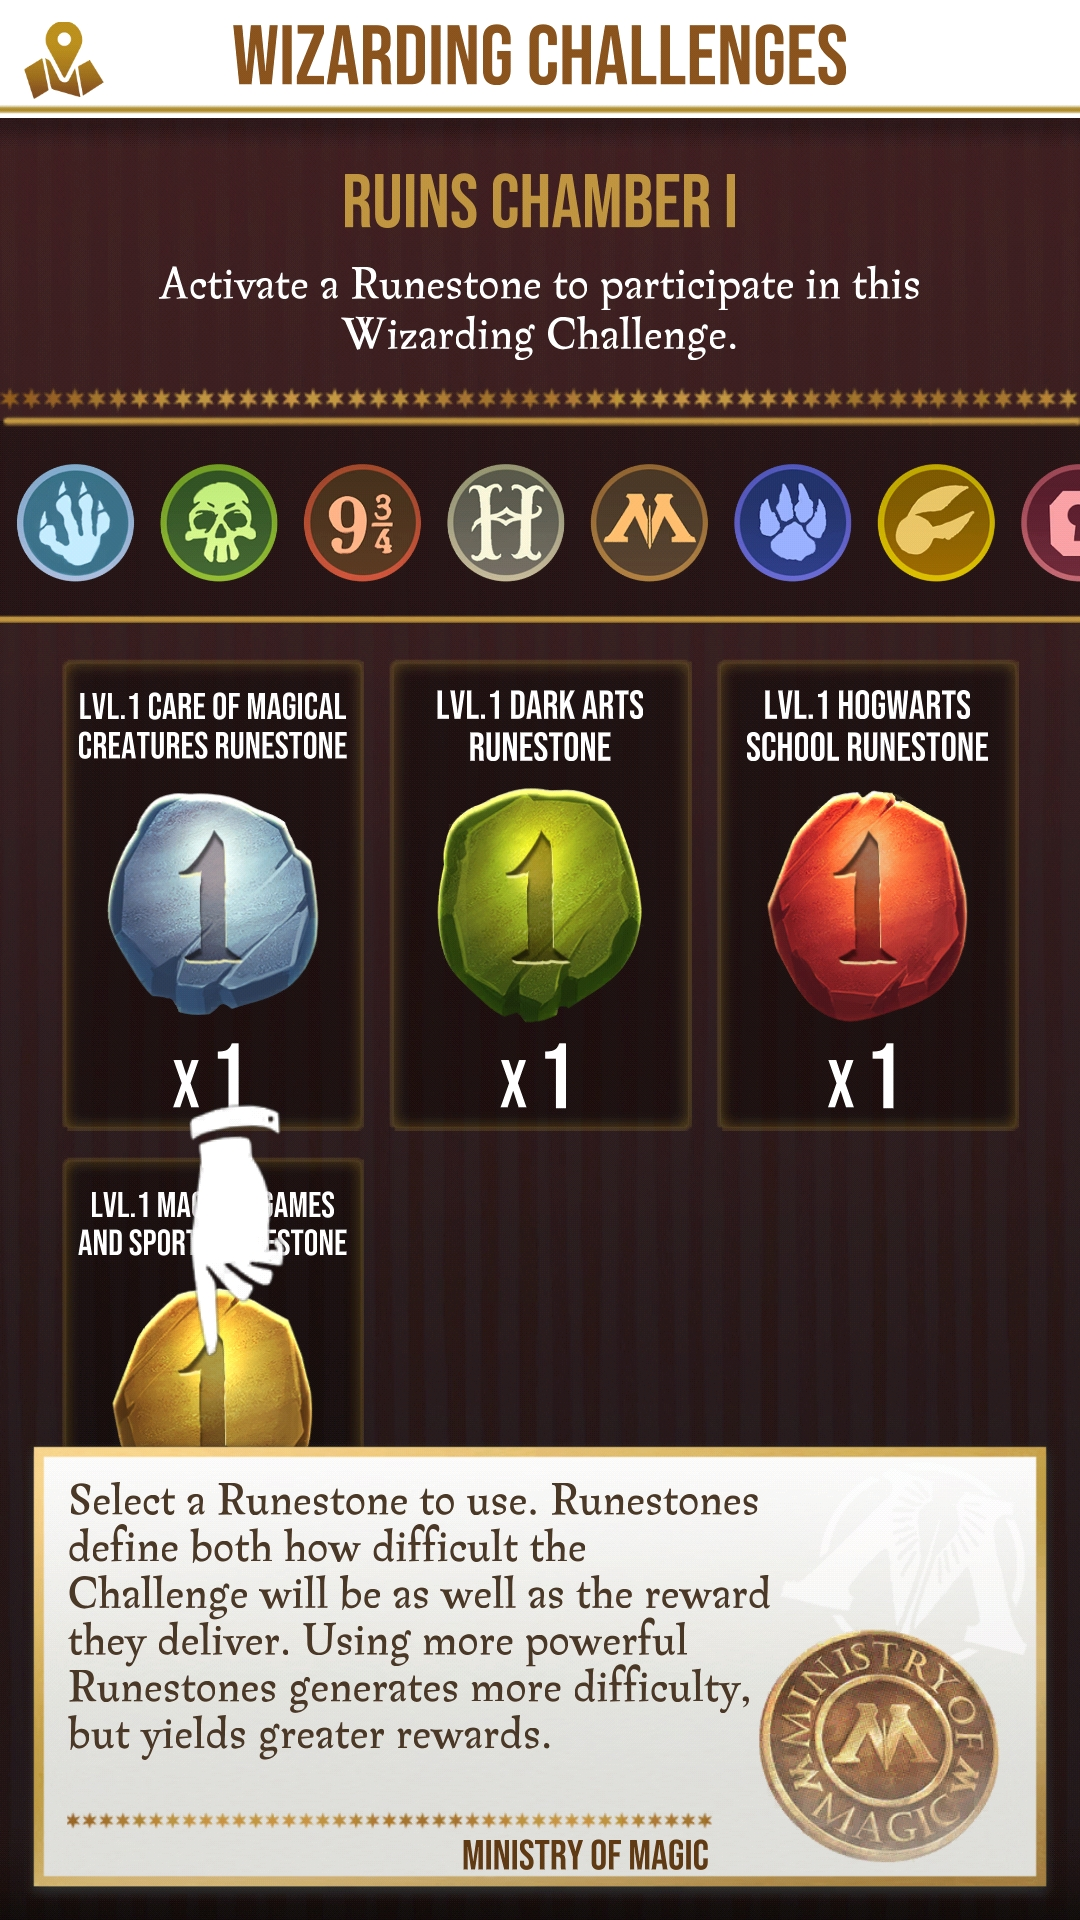 Players activate runestones to activate challenges.